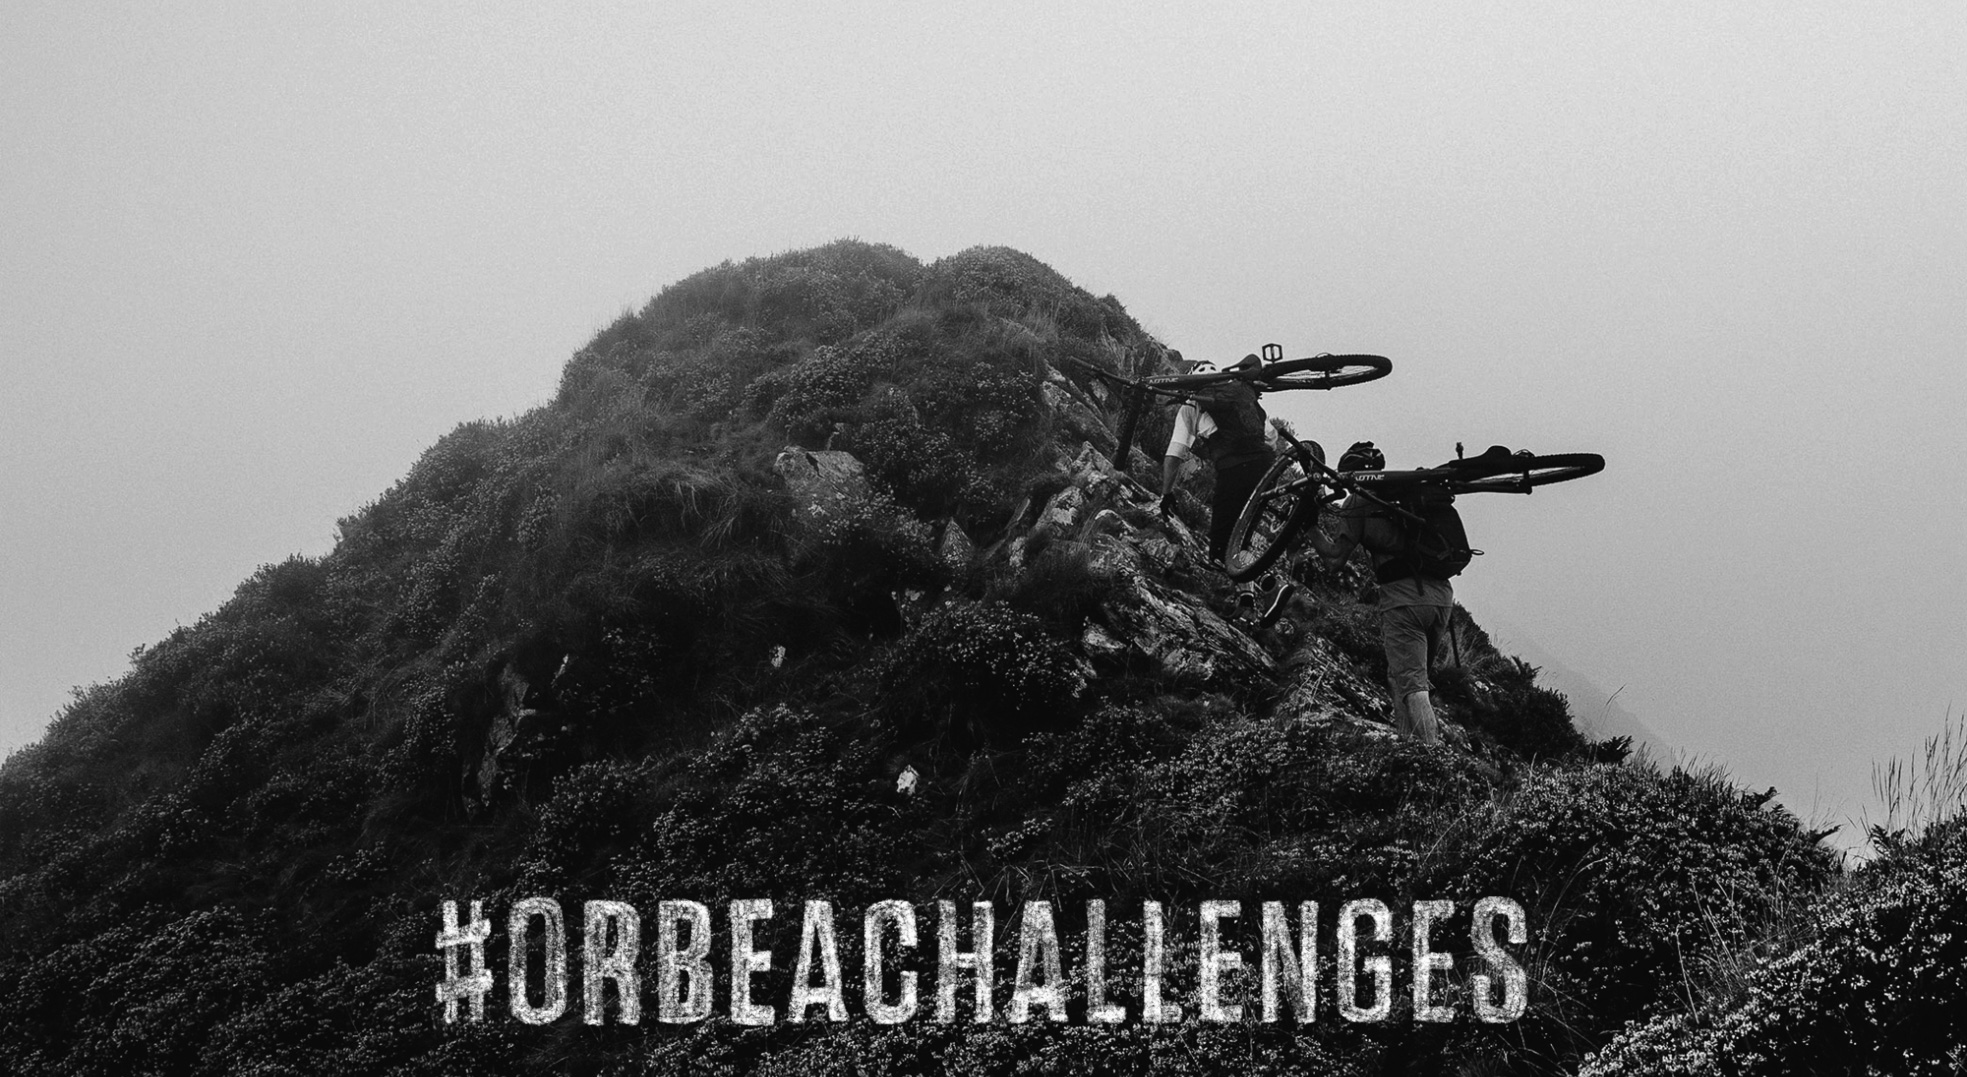 TELL US ABOUT YOUR CHALLENGE AND BECOME AN ORBEA AMBASSADOR